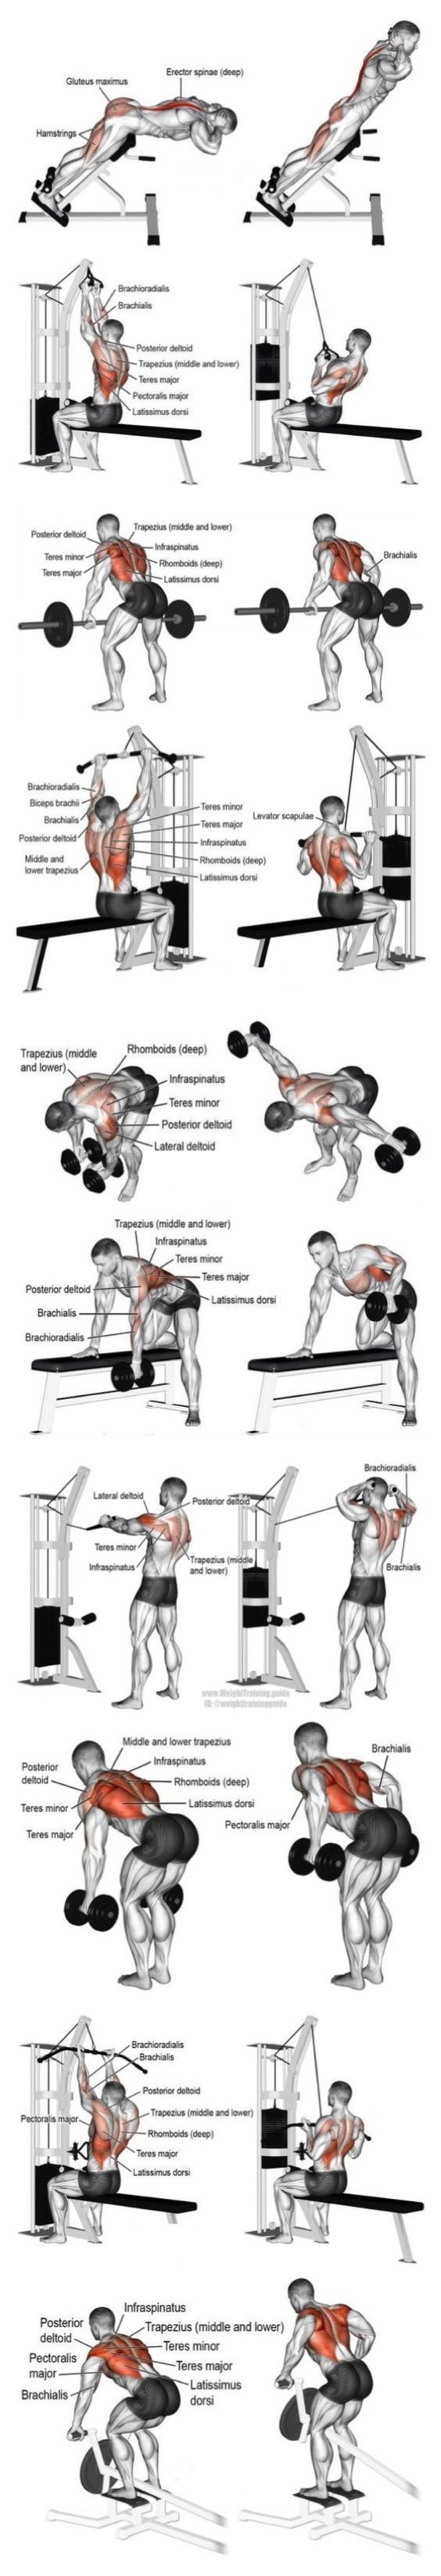 Body building fitness exercises to shape your mussel. BodyCraft gym equipment sale on Altitude Fitness Outlet https://www.musclesaurus.com/bodybuilding/